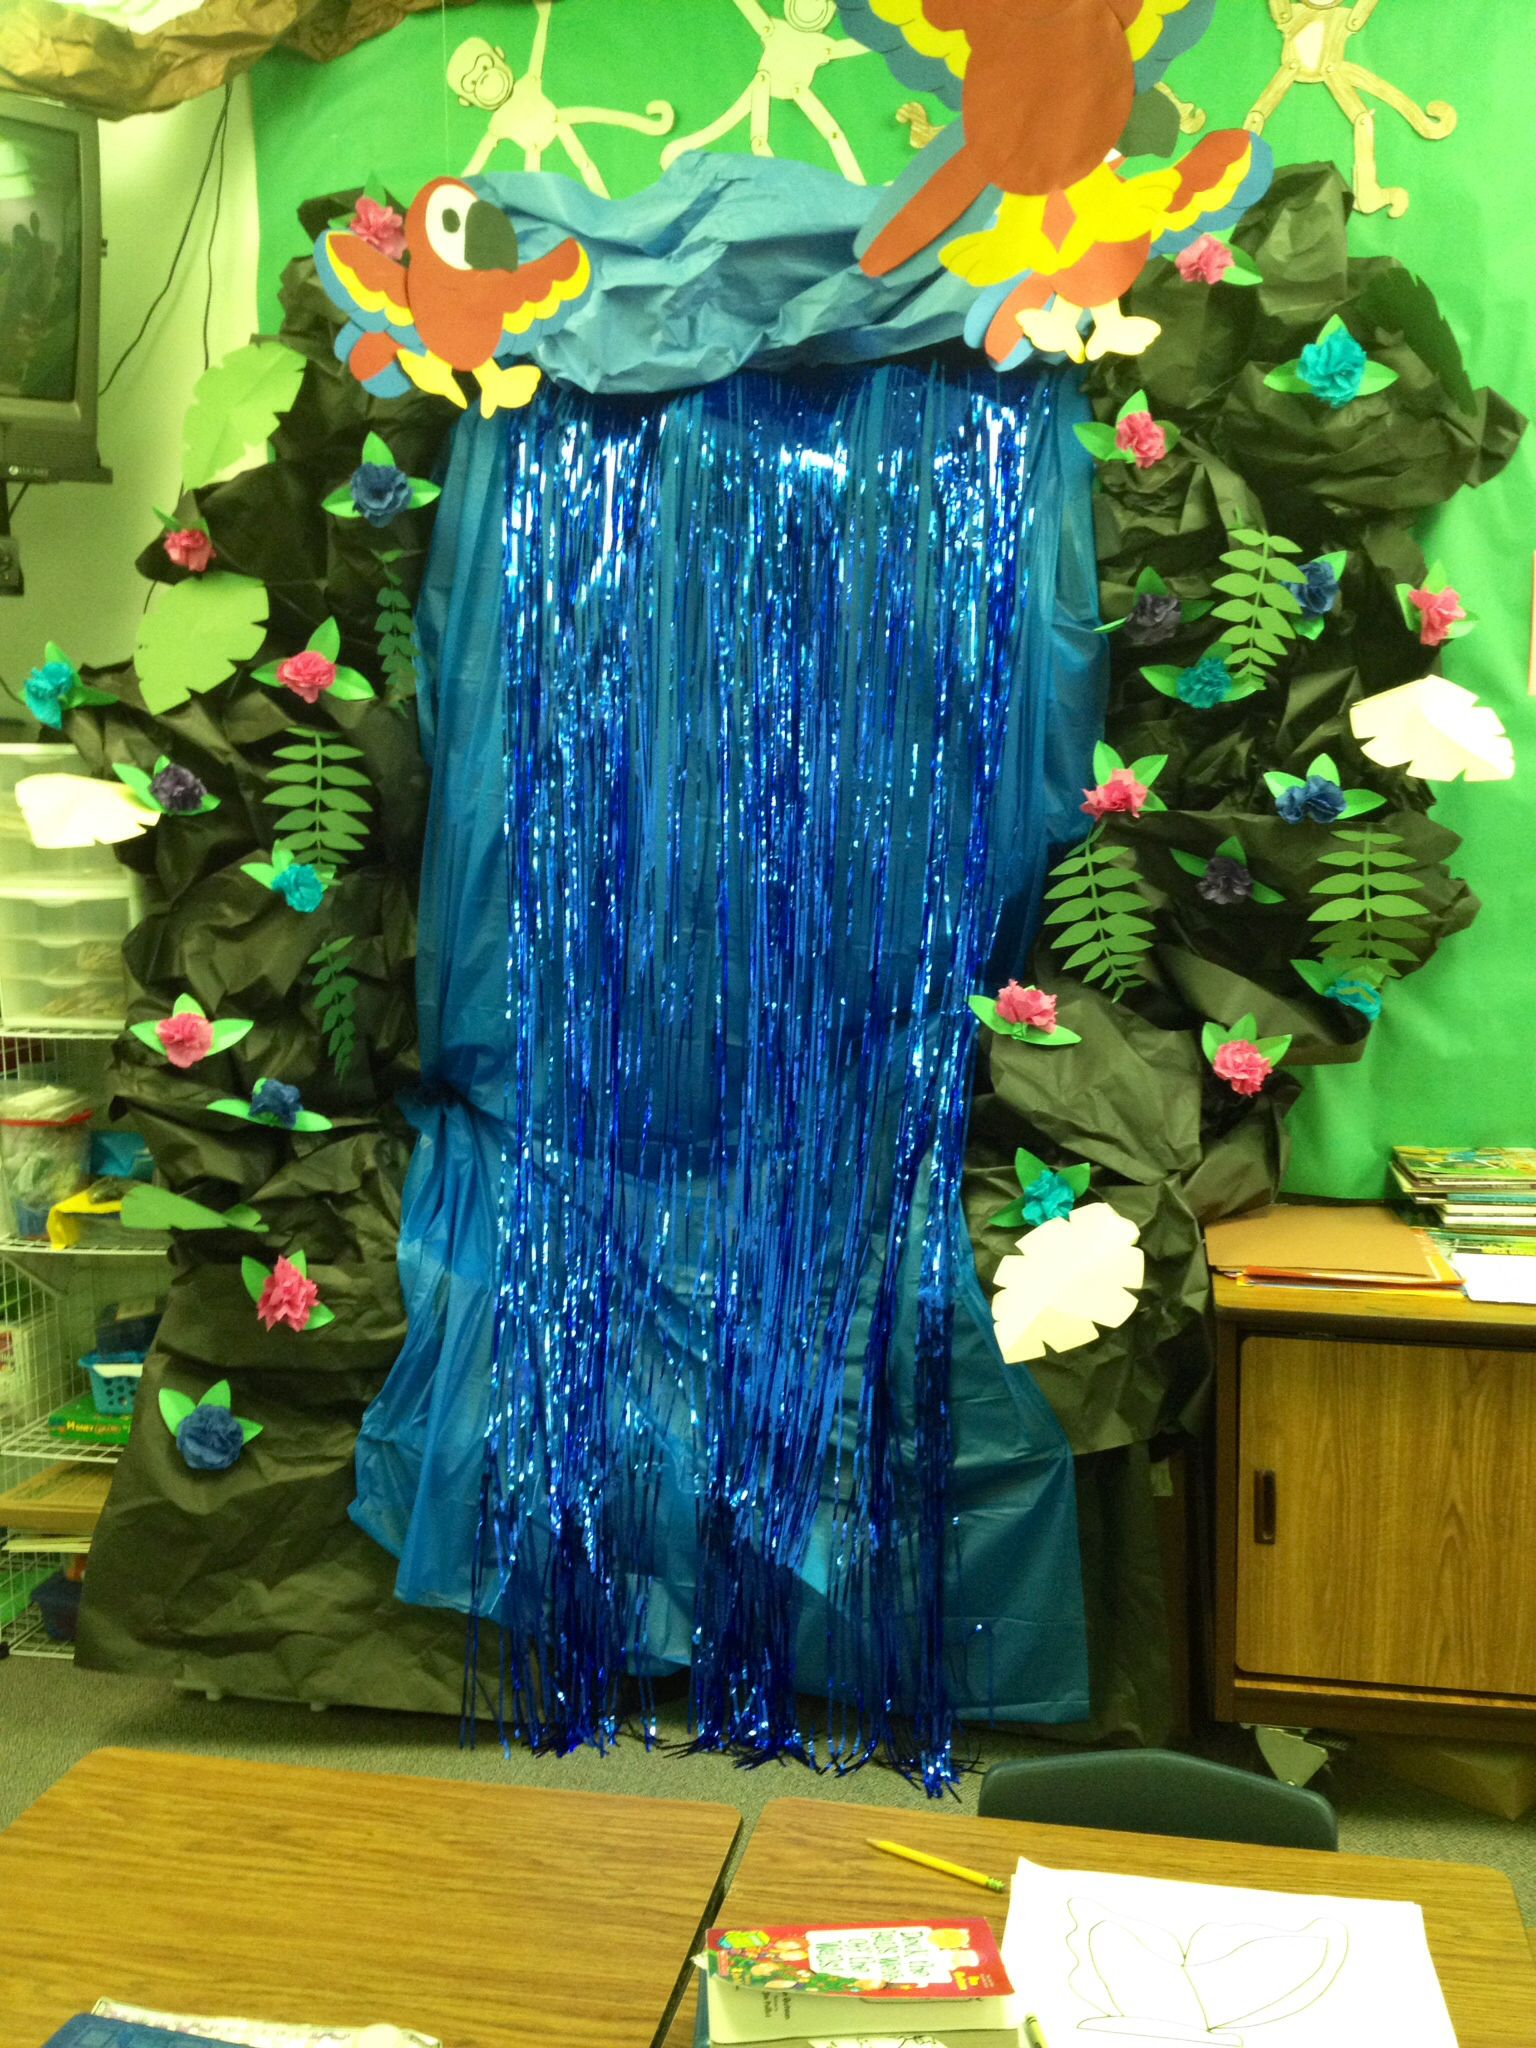 Classroom Waterfall Ideas ~ A waterfall made from butcher paper crafts pinterest